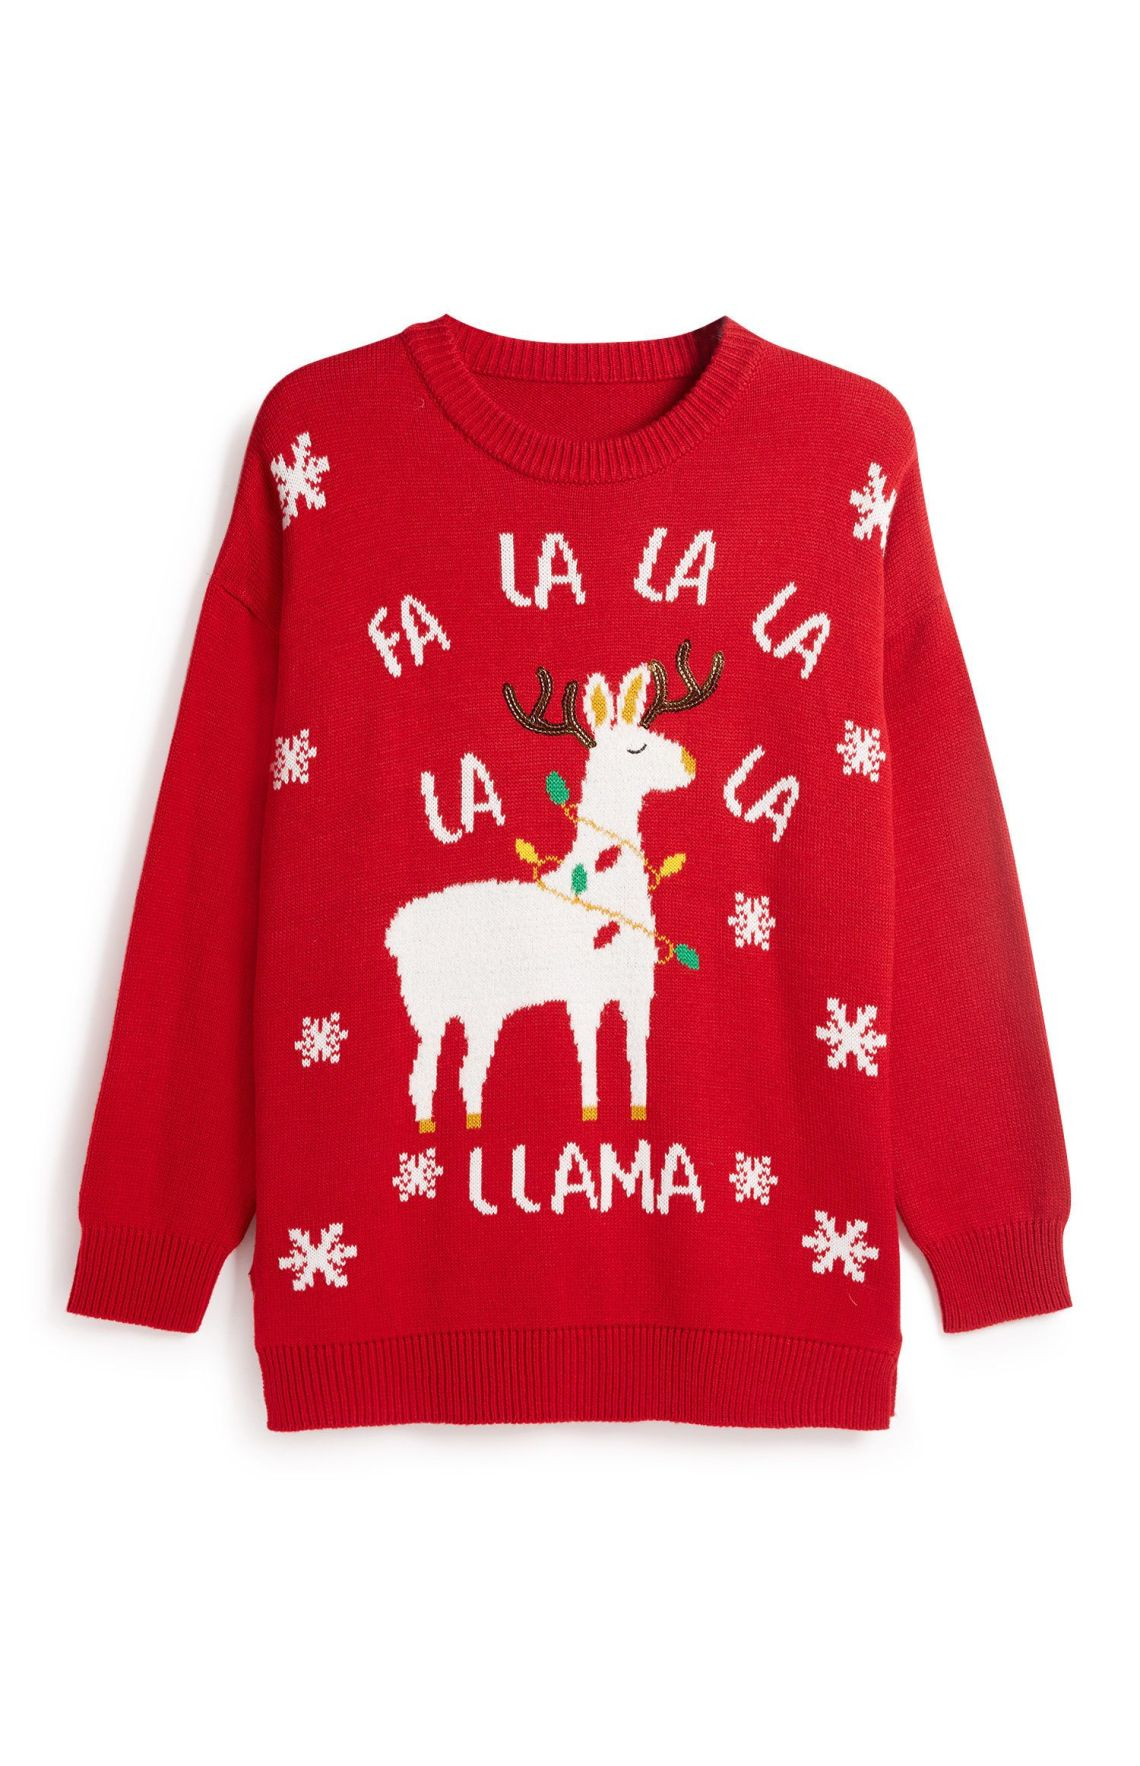 Festive llamas. What's not to love?Primark, £12.